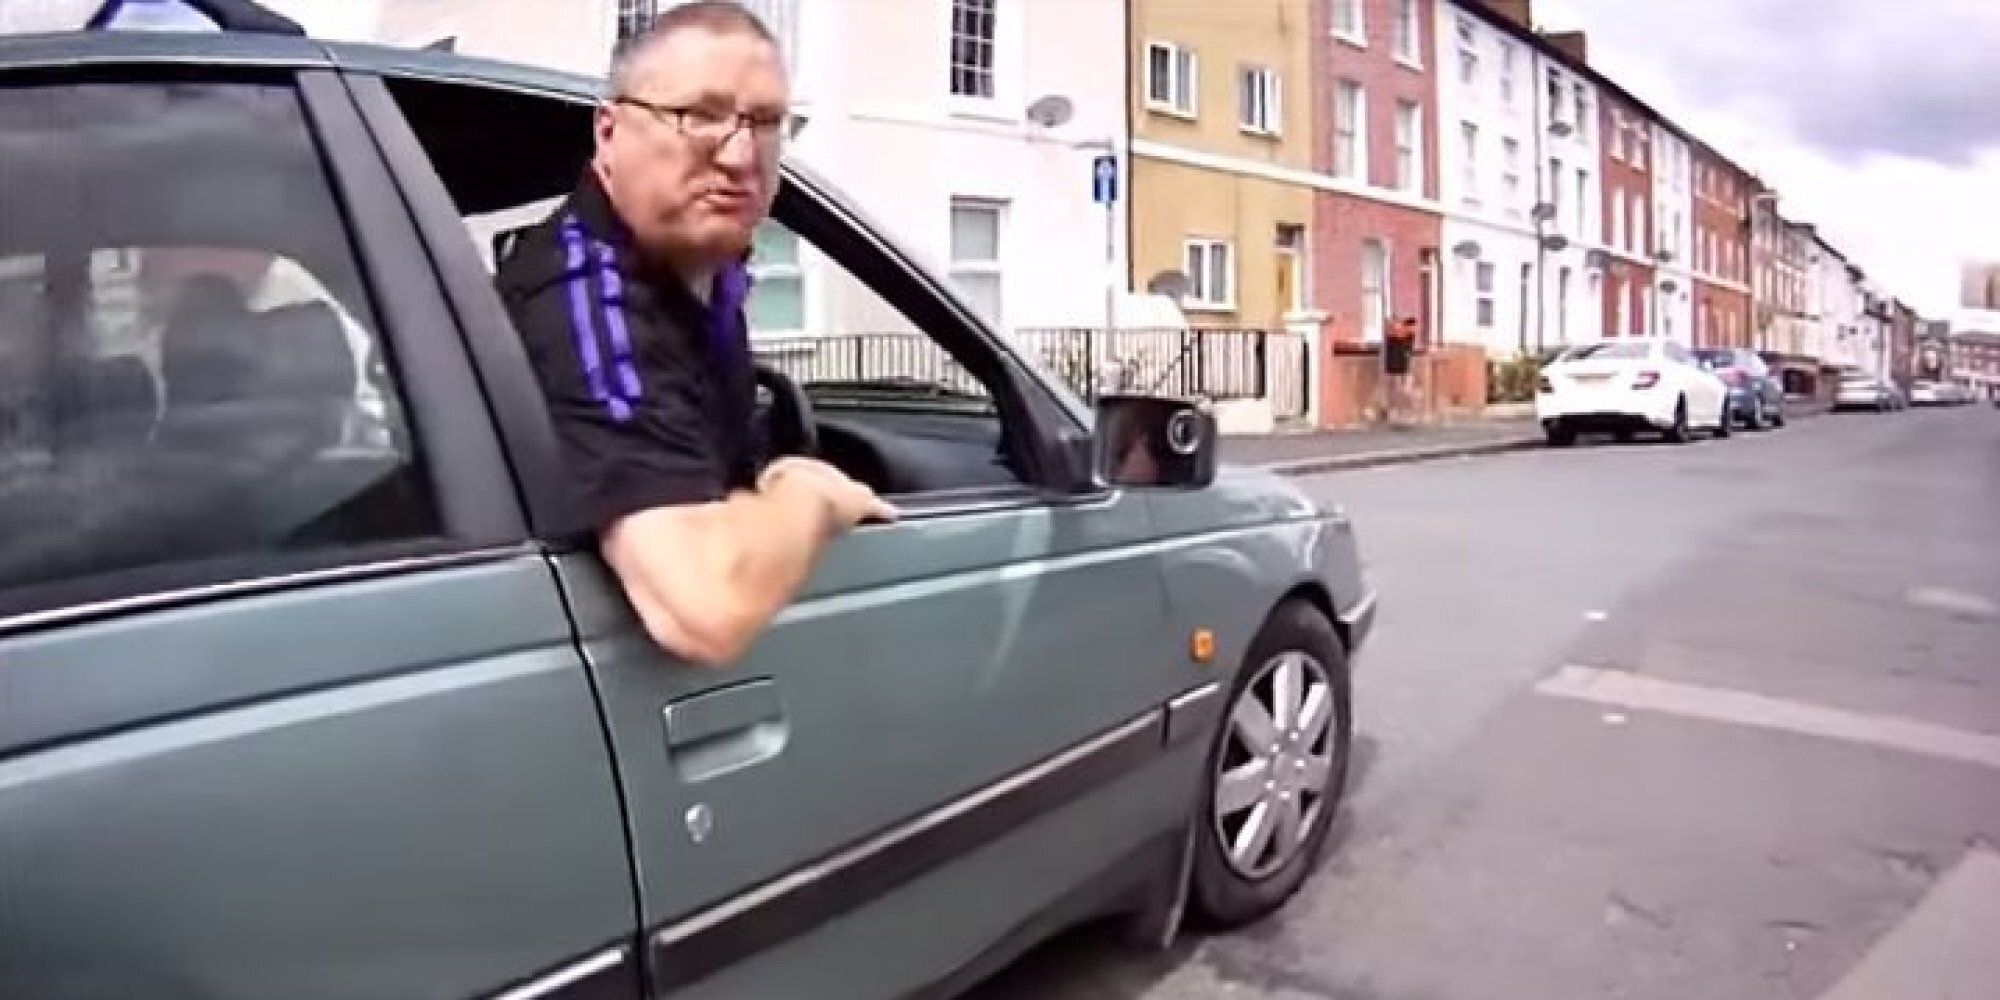 Reading Driver Comically Falls Over After Angry Row With Cyclist